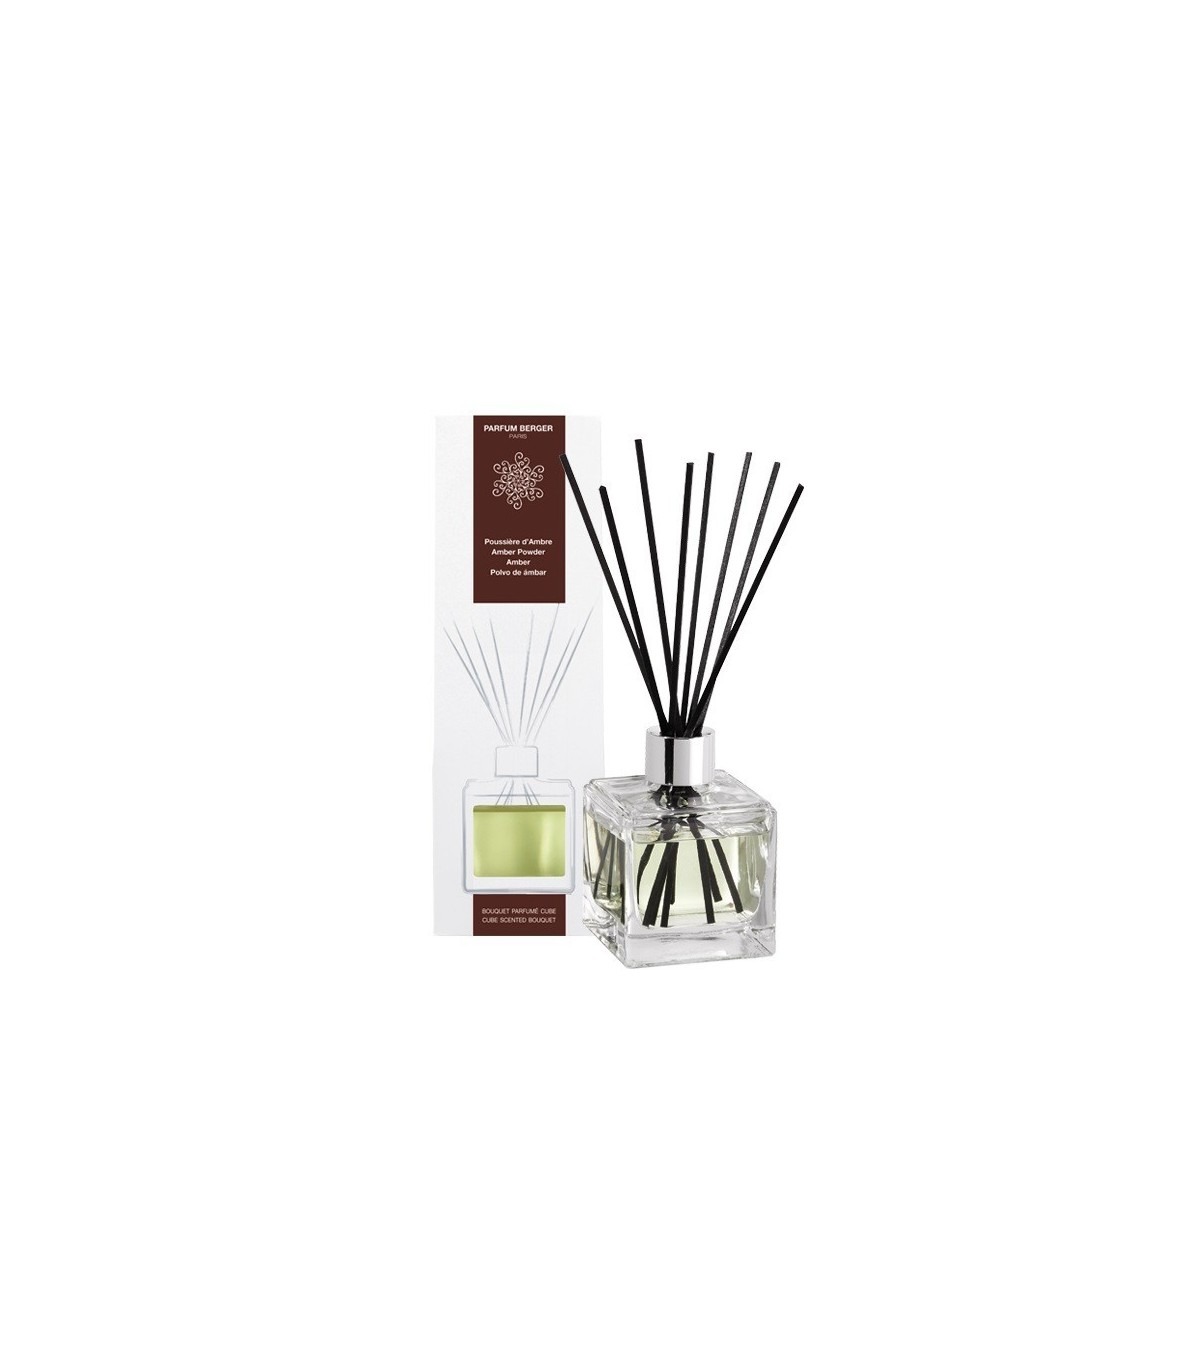 Cedre Du Liban Sticks Diffuser Chic 125 Ml Lampe Berger